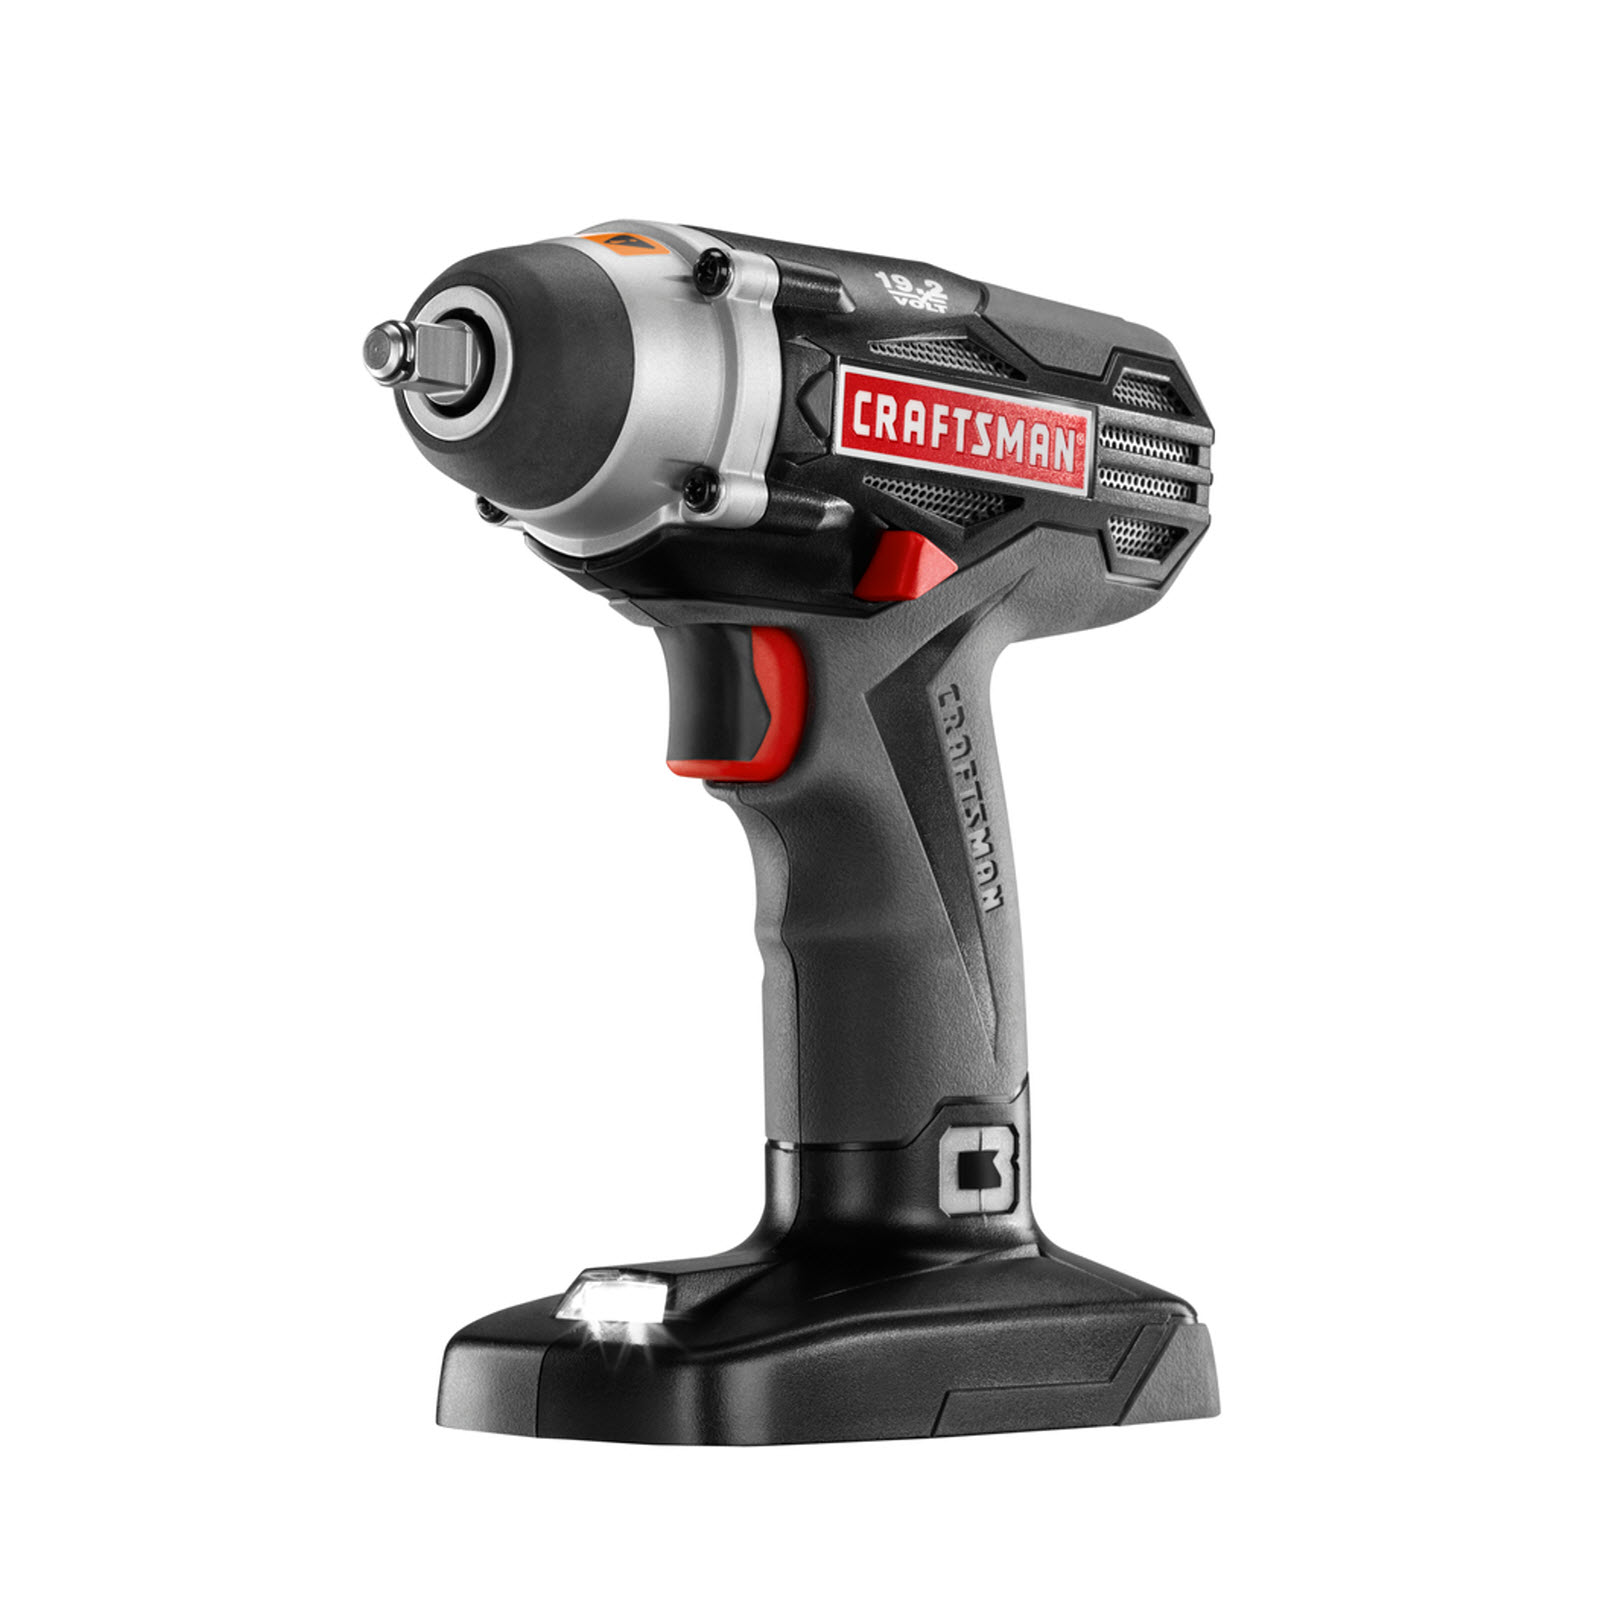 Craftsman C3 3/8-In Impact Wrench Add-On Tool